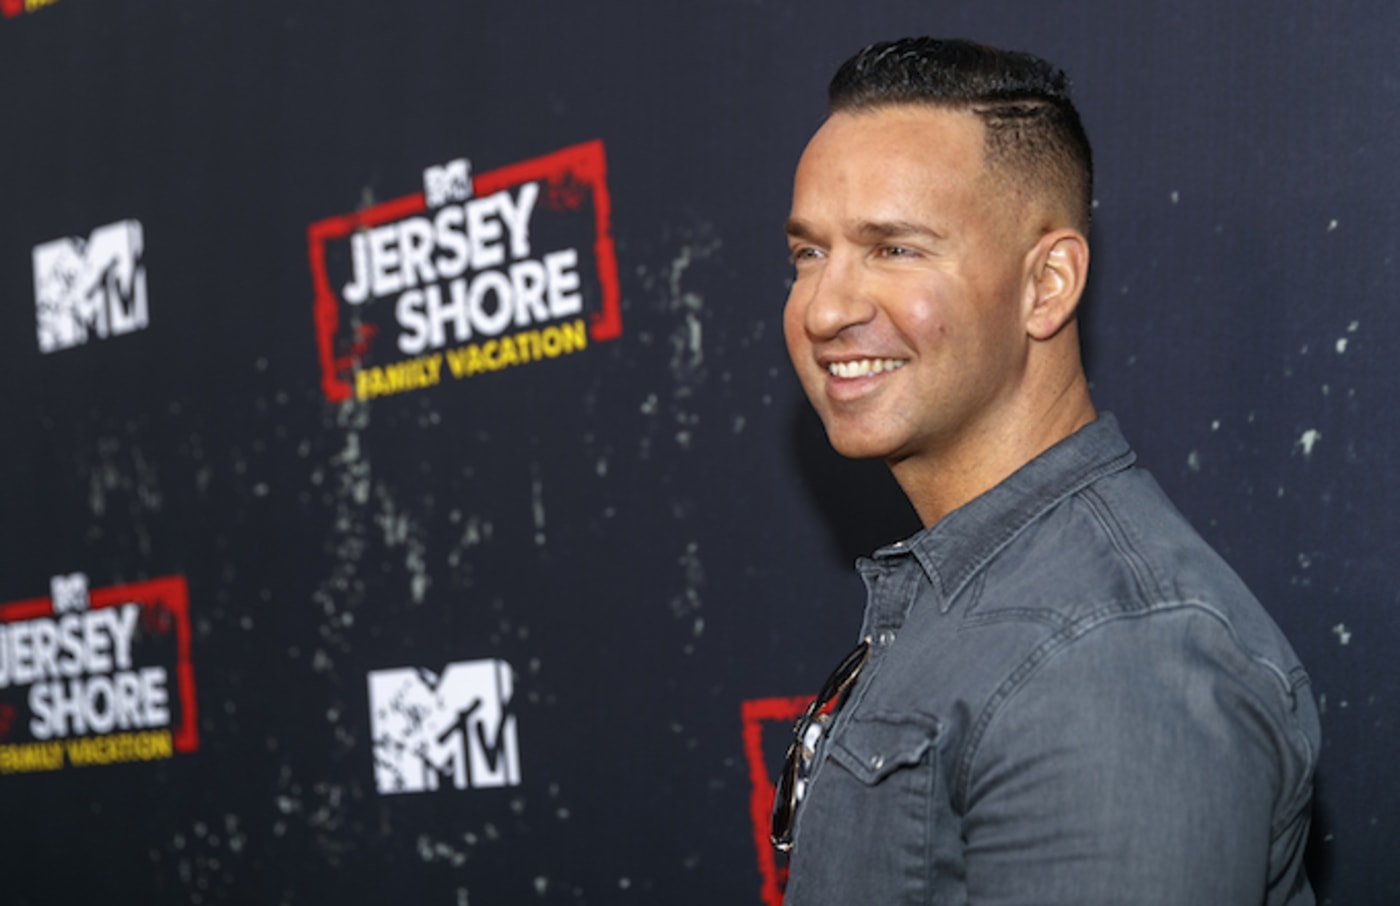 """Mike Sorrentino arrives at the """"Jersey Shore Family Vacation"""" Premiere Party."""